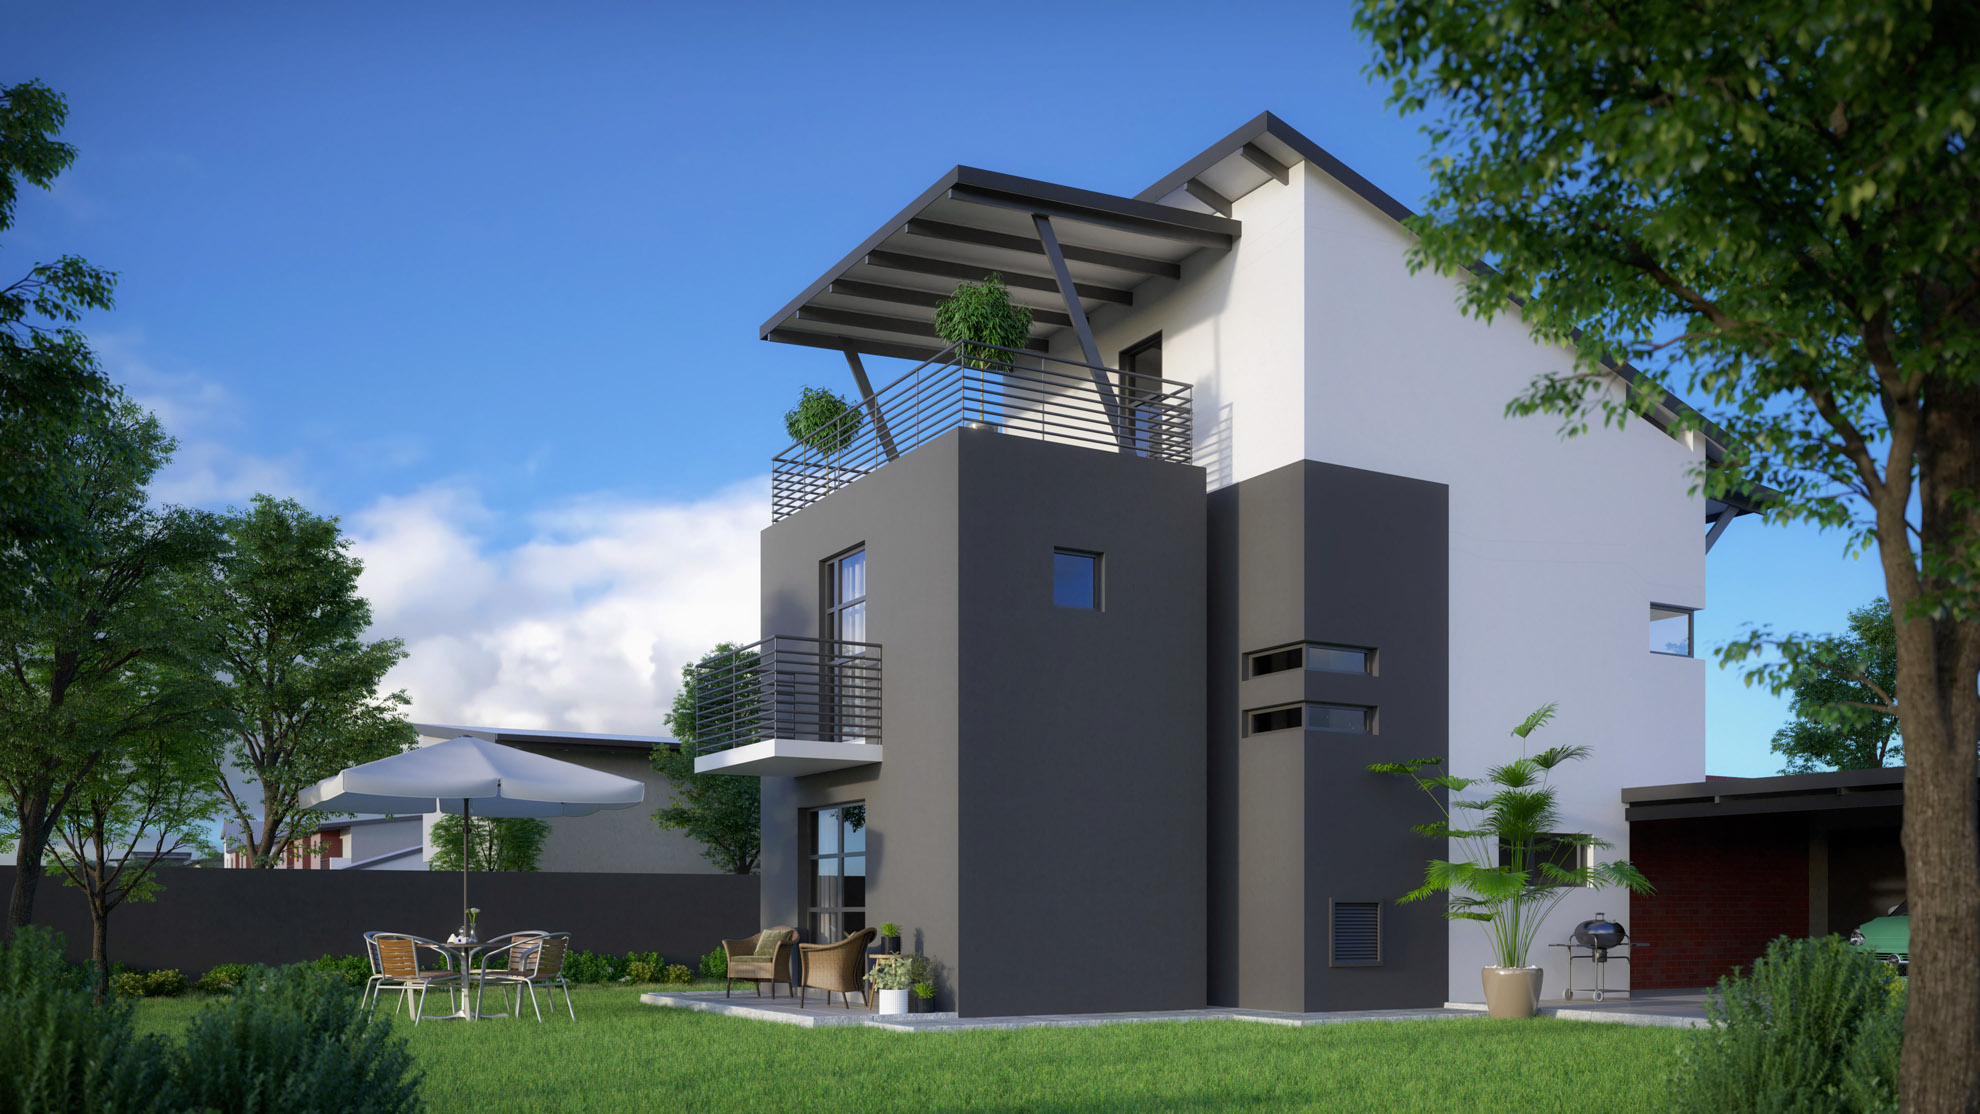 URBAN HOME DOUBLE STOREY 2 BEDROOMS + 2 BATHROOMS